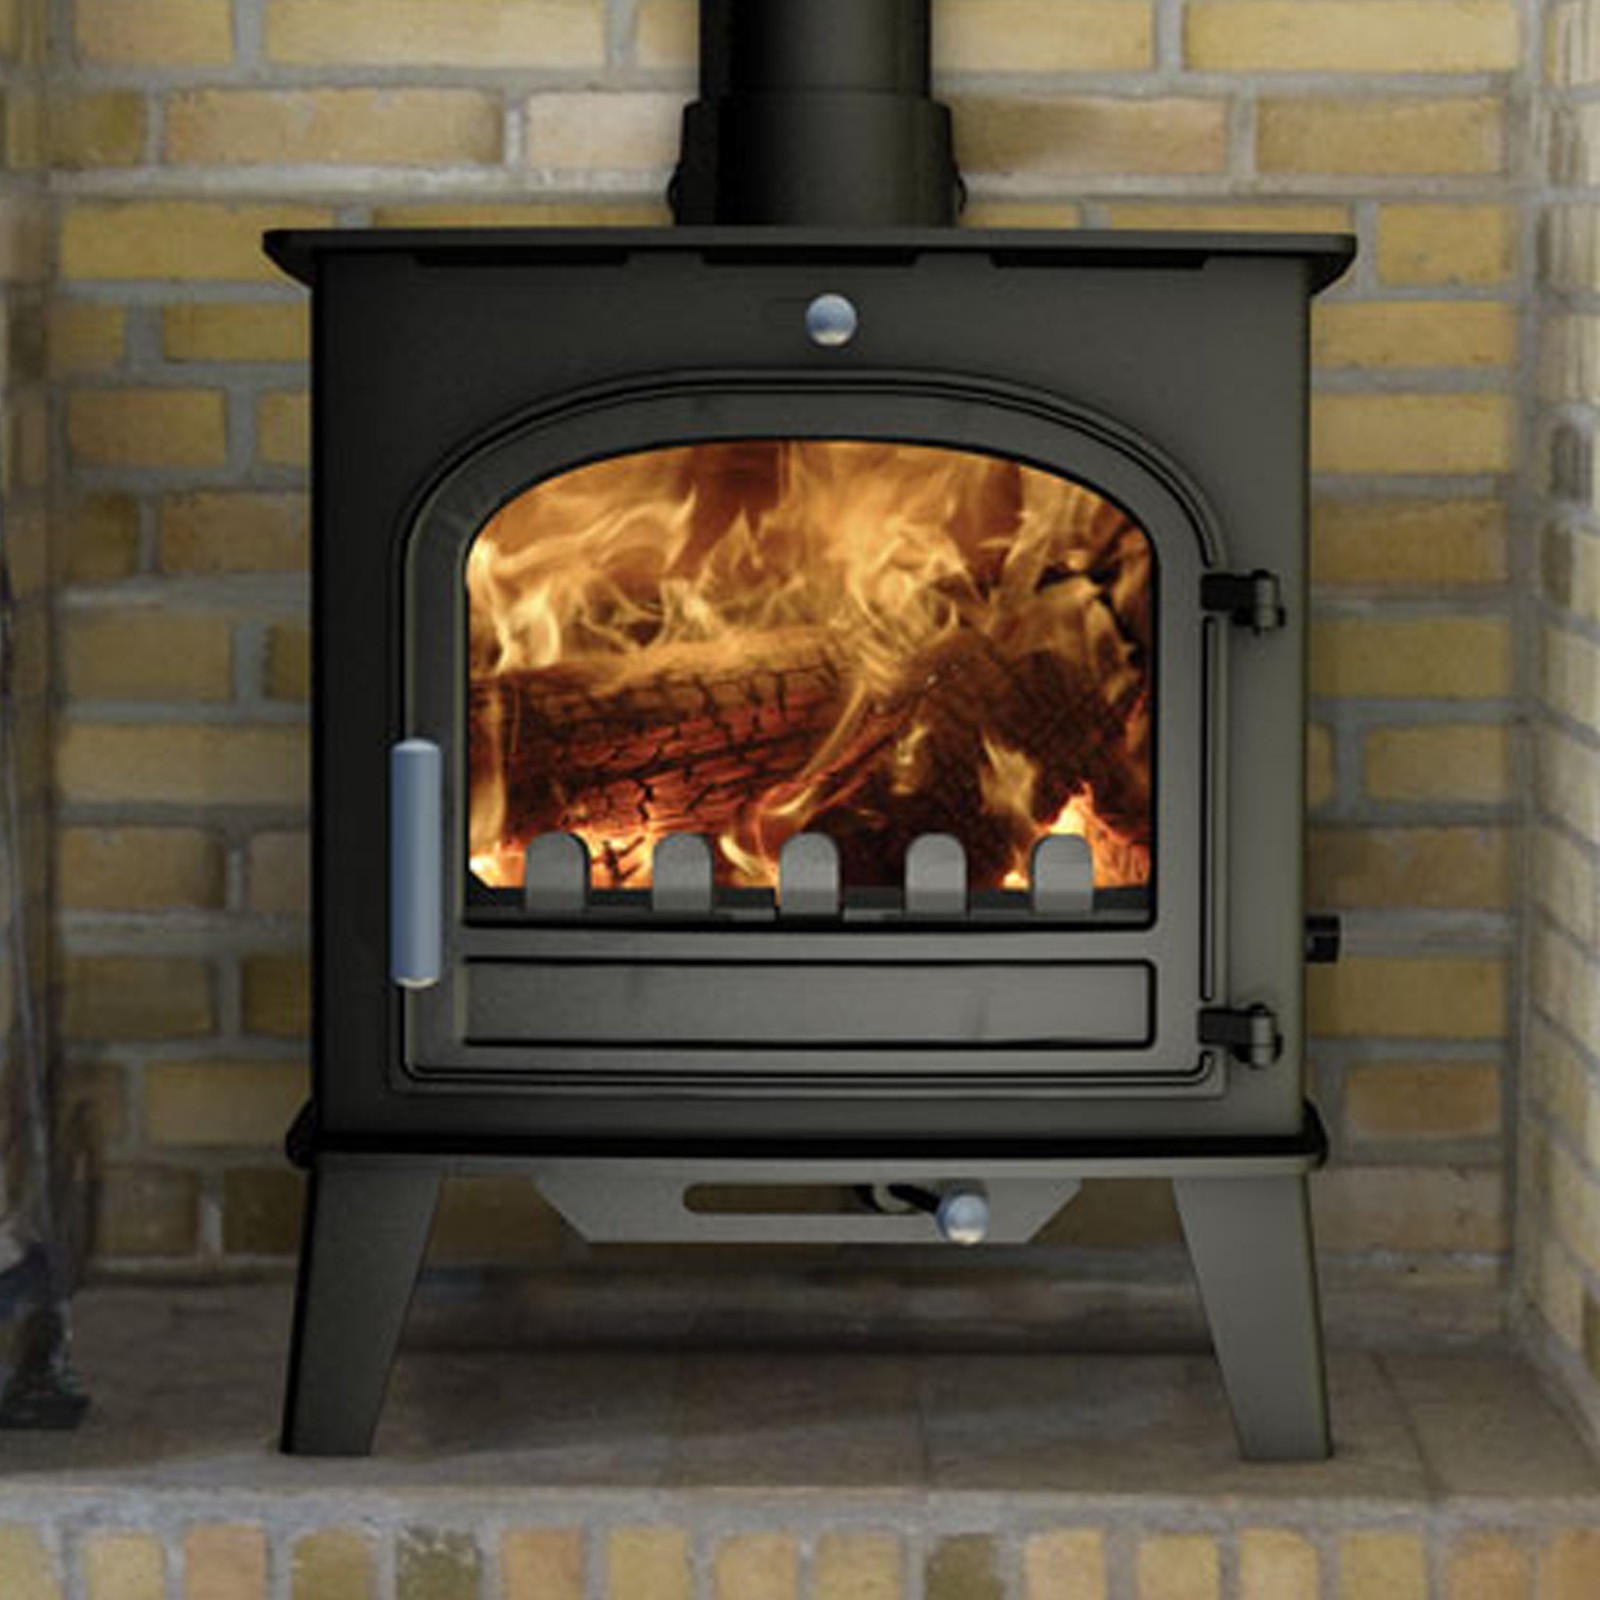 Top Quality Cleanburn Norreskoven Mk2 Traditional Multifuel Woodburning Stove Speedy Delivery